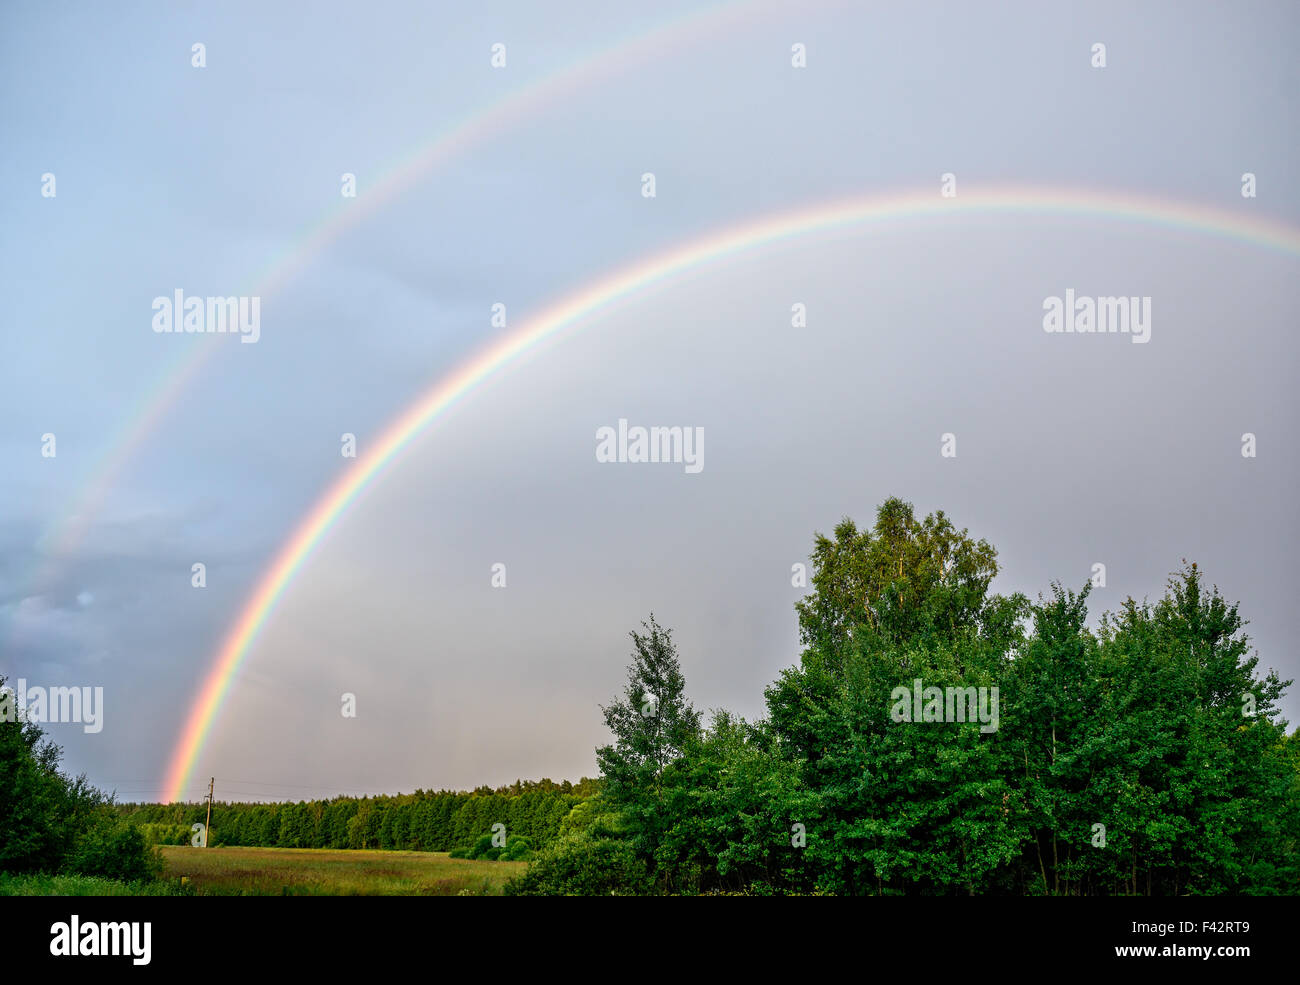 Cloudy sky with rainbows - Stock Image